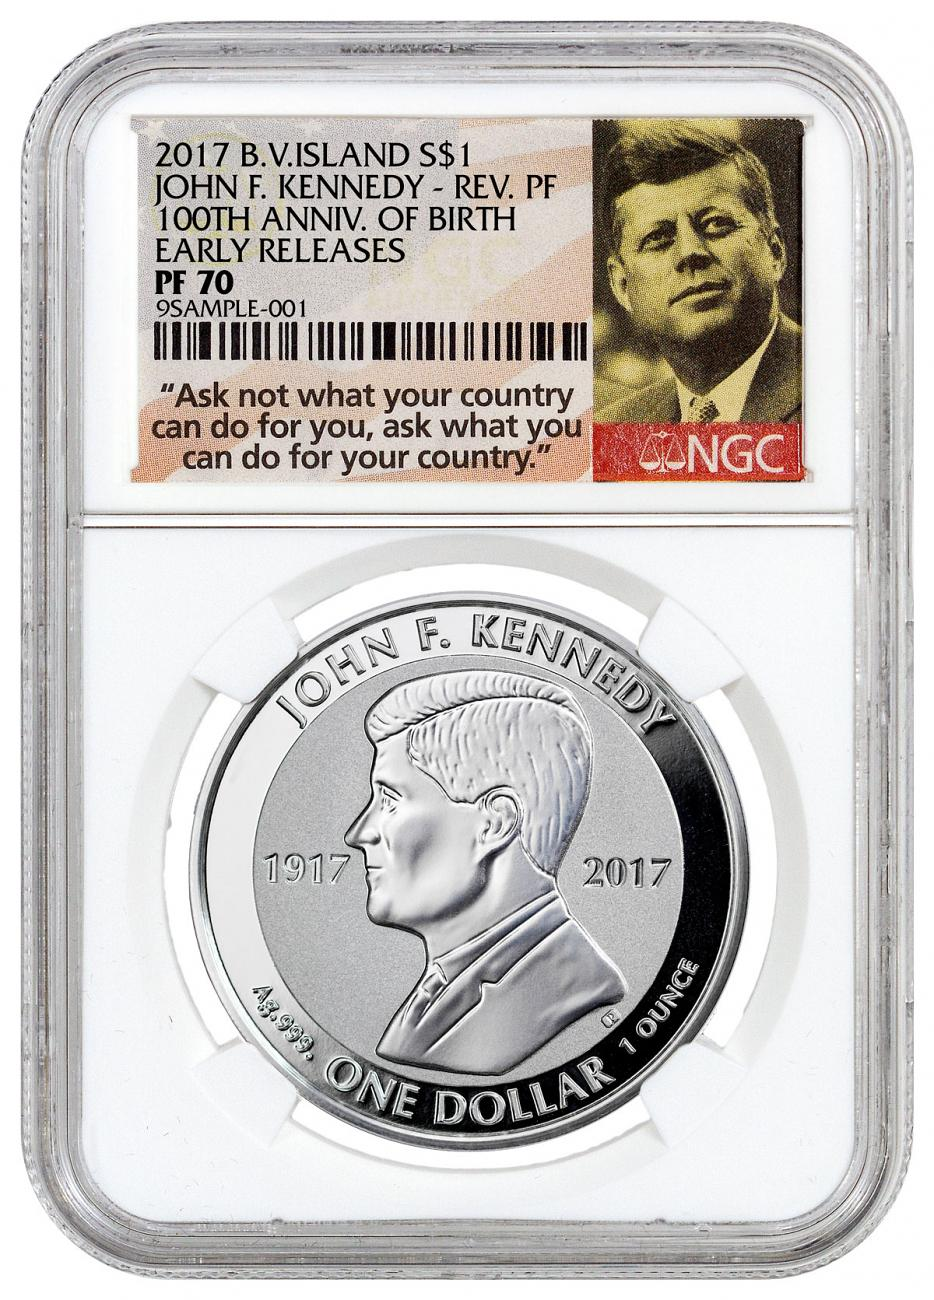 2017 British Virgin Islands John F. Kennedy 1 oz Silver Reverse Proof $1 Coin NGC PF70 ER (Ask Not Label)